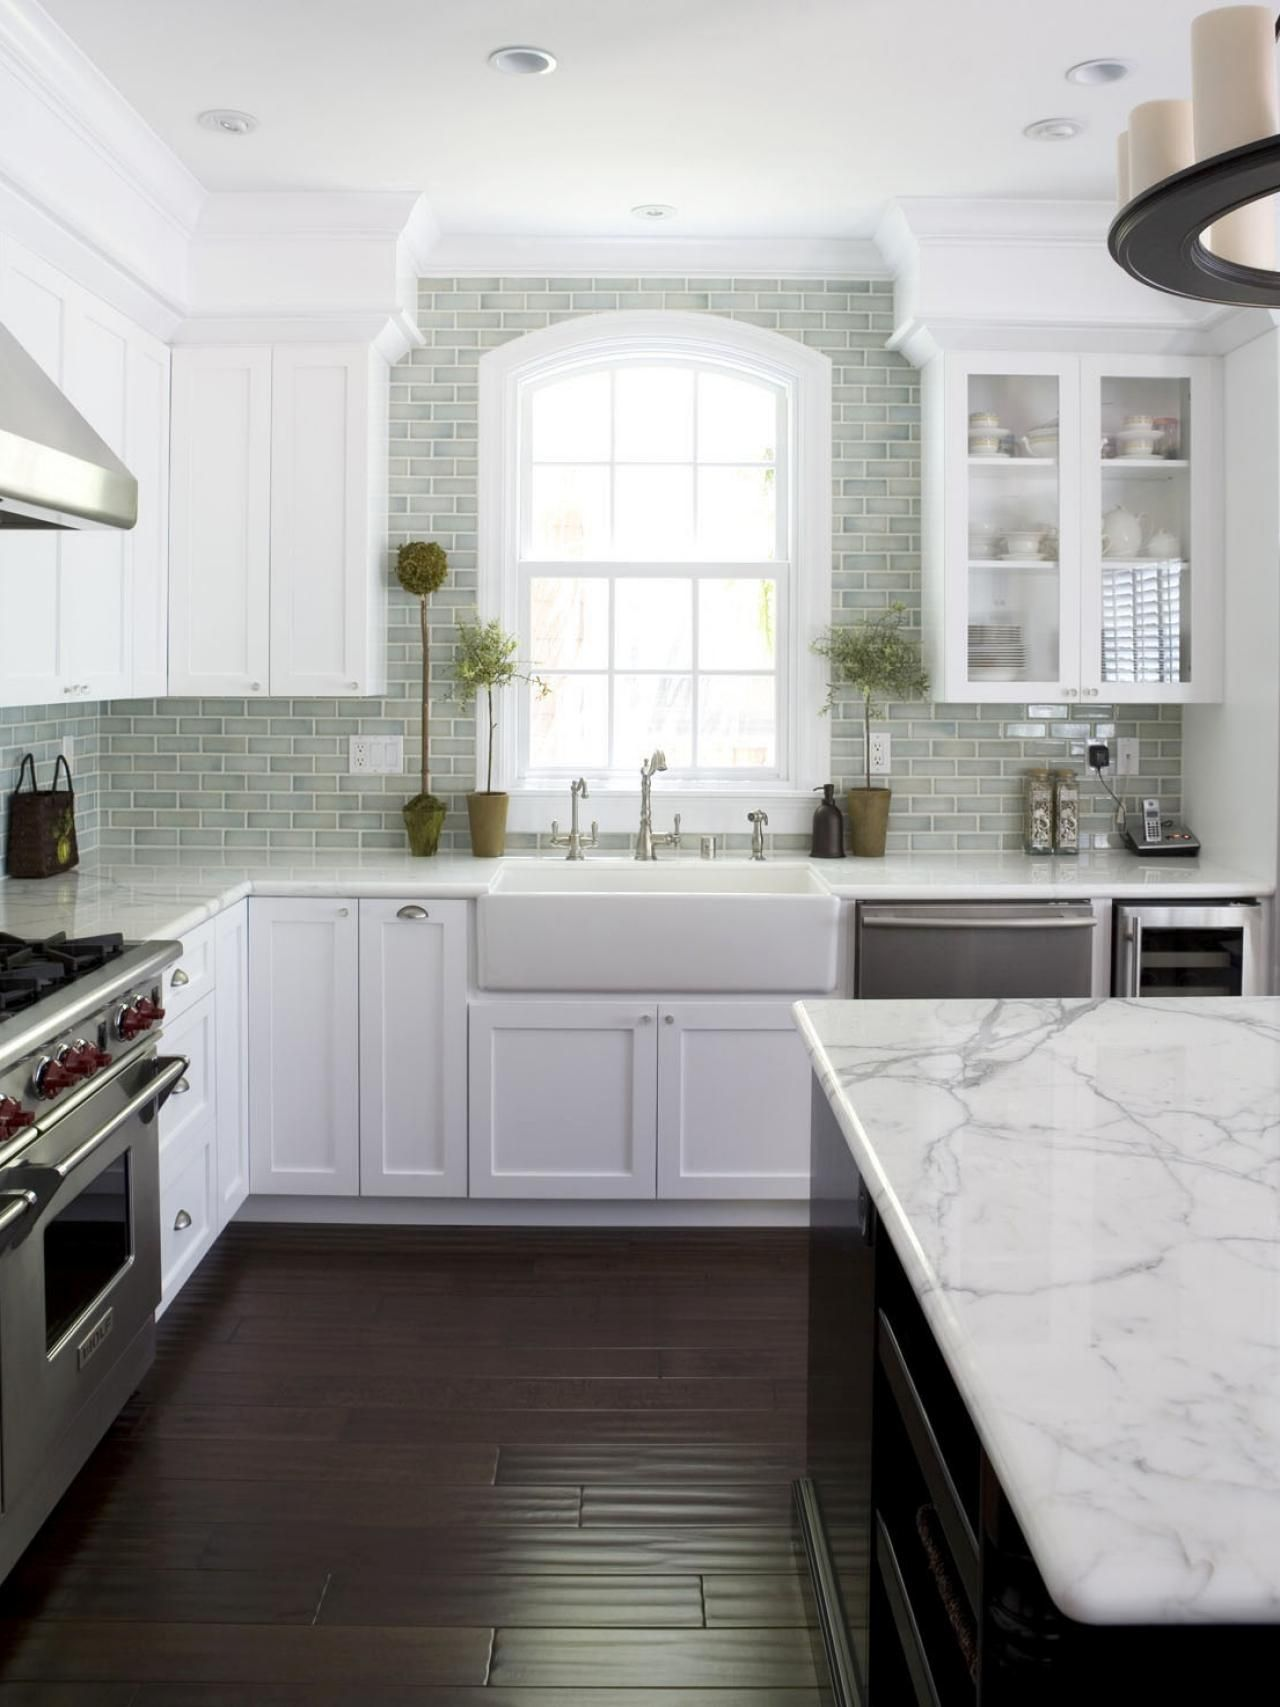 Our 40 Favorite White Kitchens Kitchen Inspirations White Kitchen Design Kitchen Design